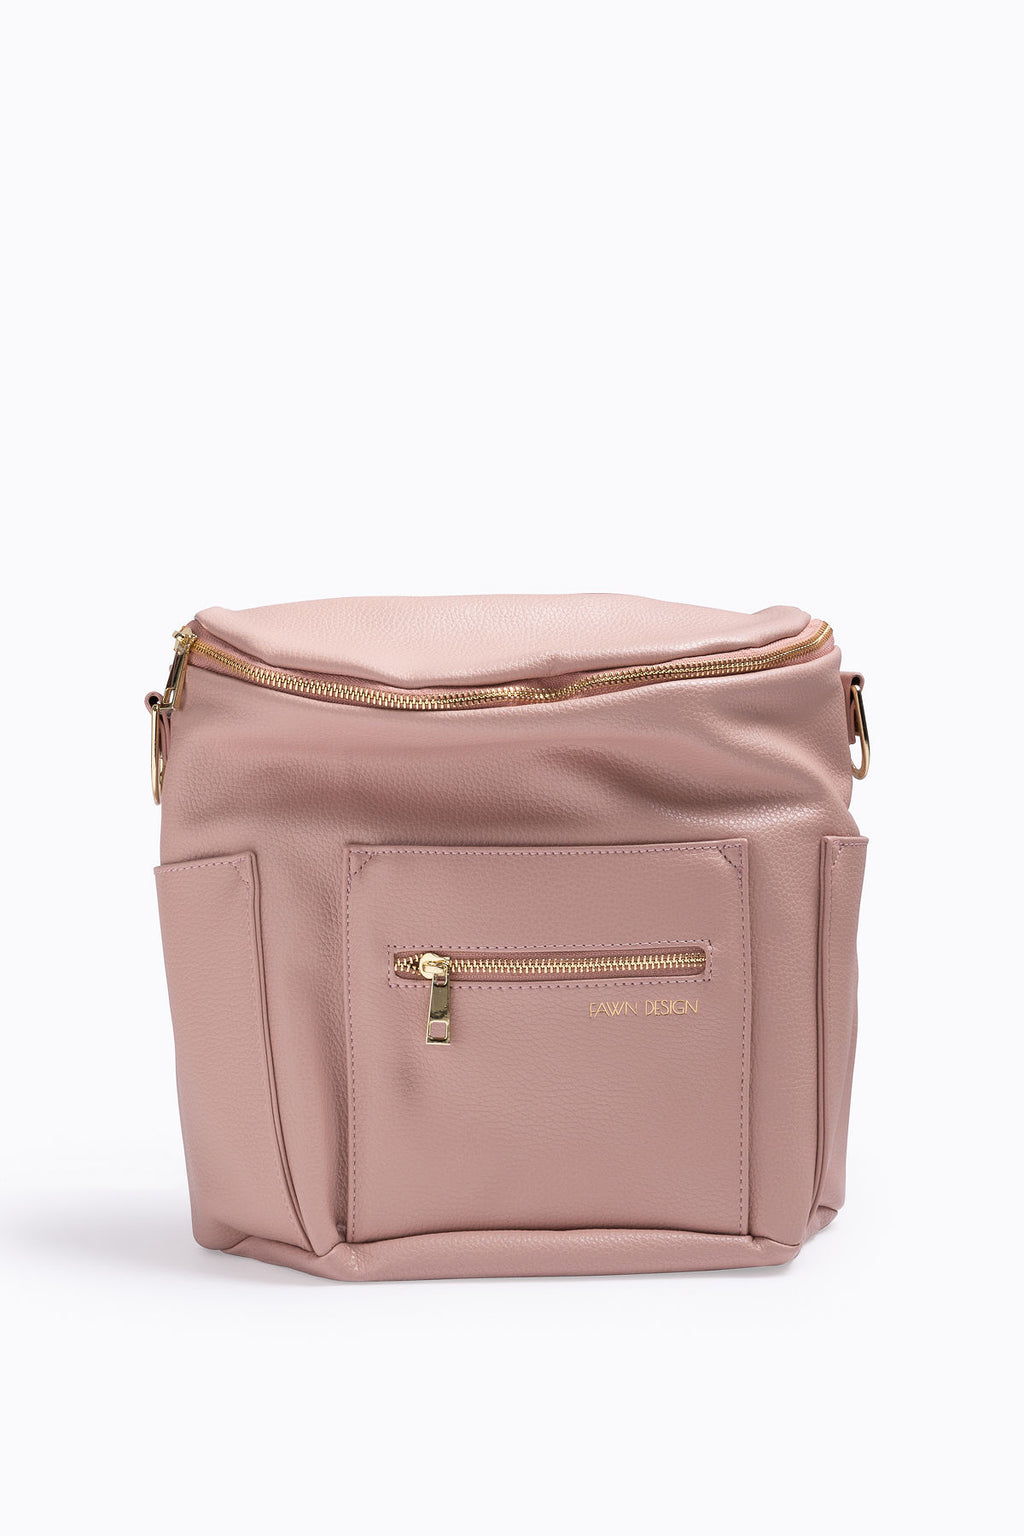 Fawn Design: The Mini in Blush